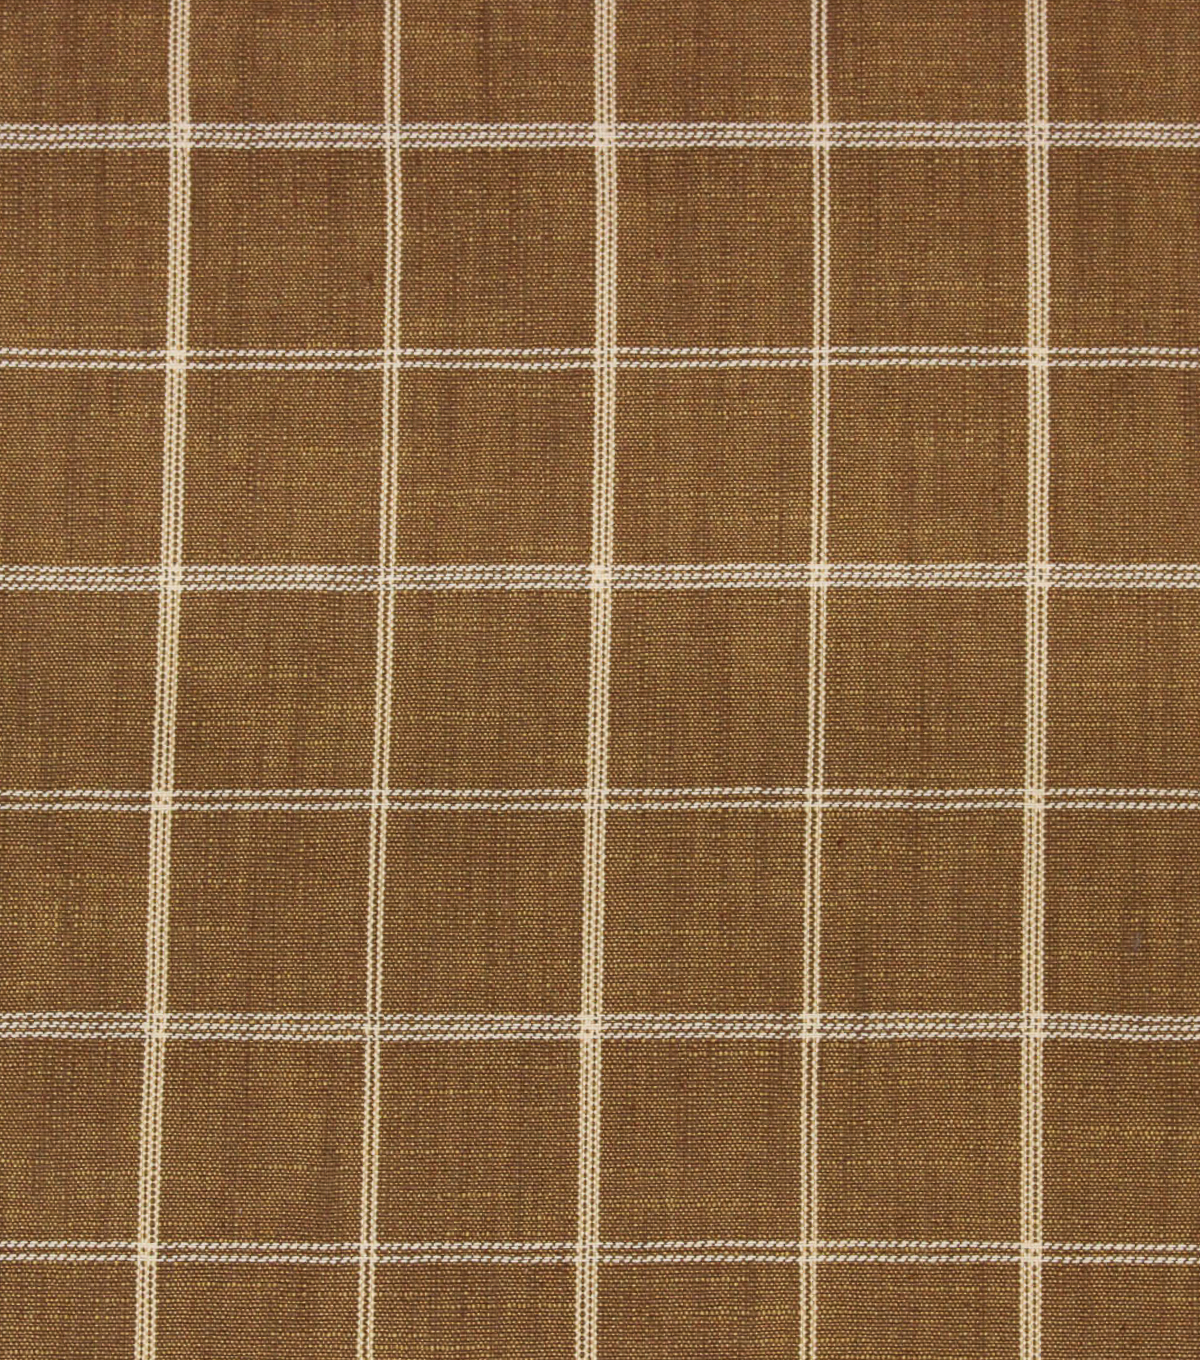 "Richloom Studio Upholstery Fabric 56""-Petersburg/Tobacco"